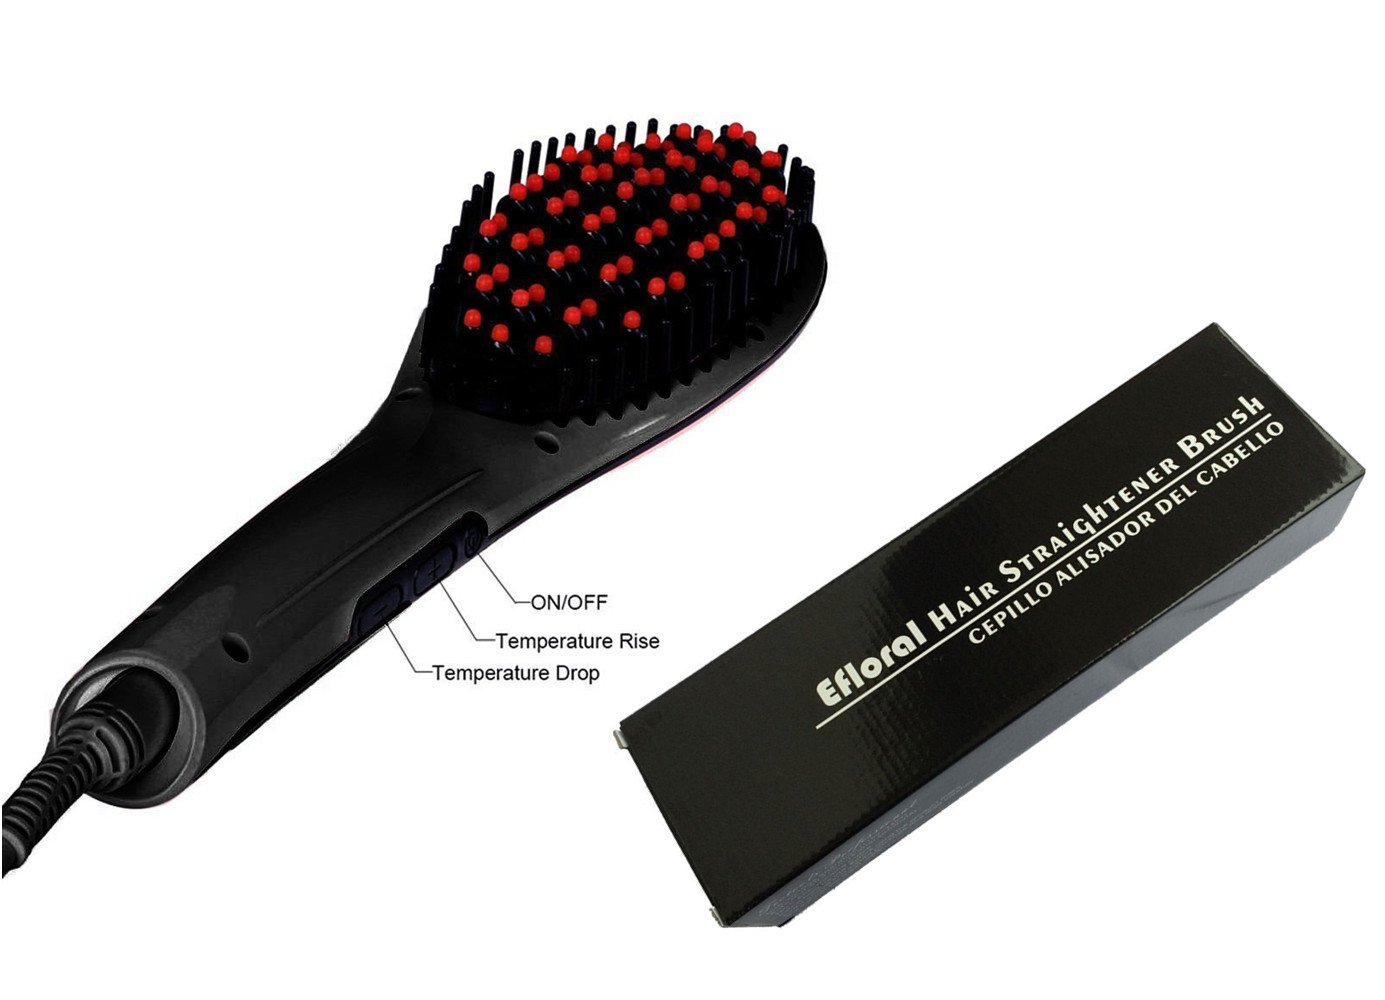 Amazon.com : Efloral Brush Hair Straightener, Detangling Hair Brush for Faster, Instant Magic Silky Straight Hair Styling, zero Damage, Anion Hair Care, ...